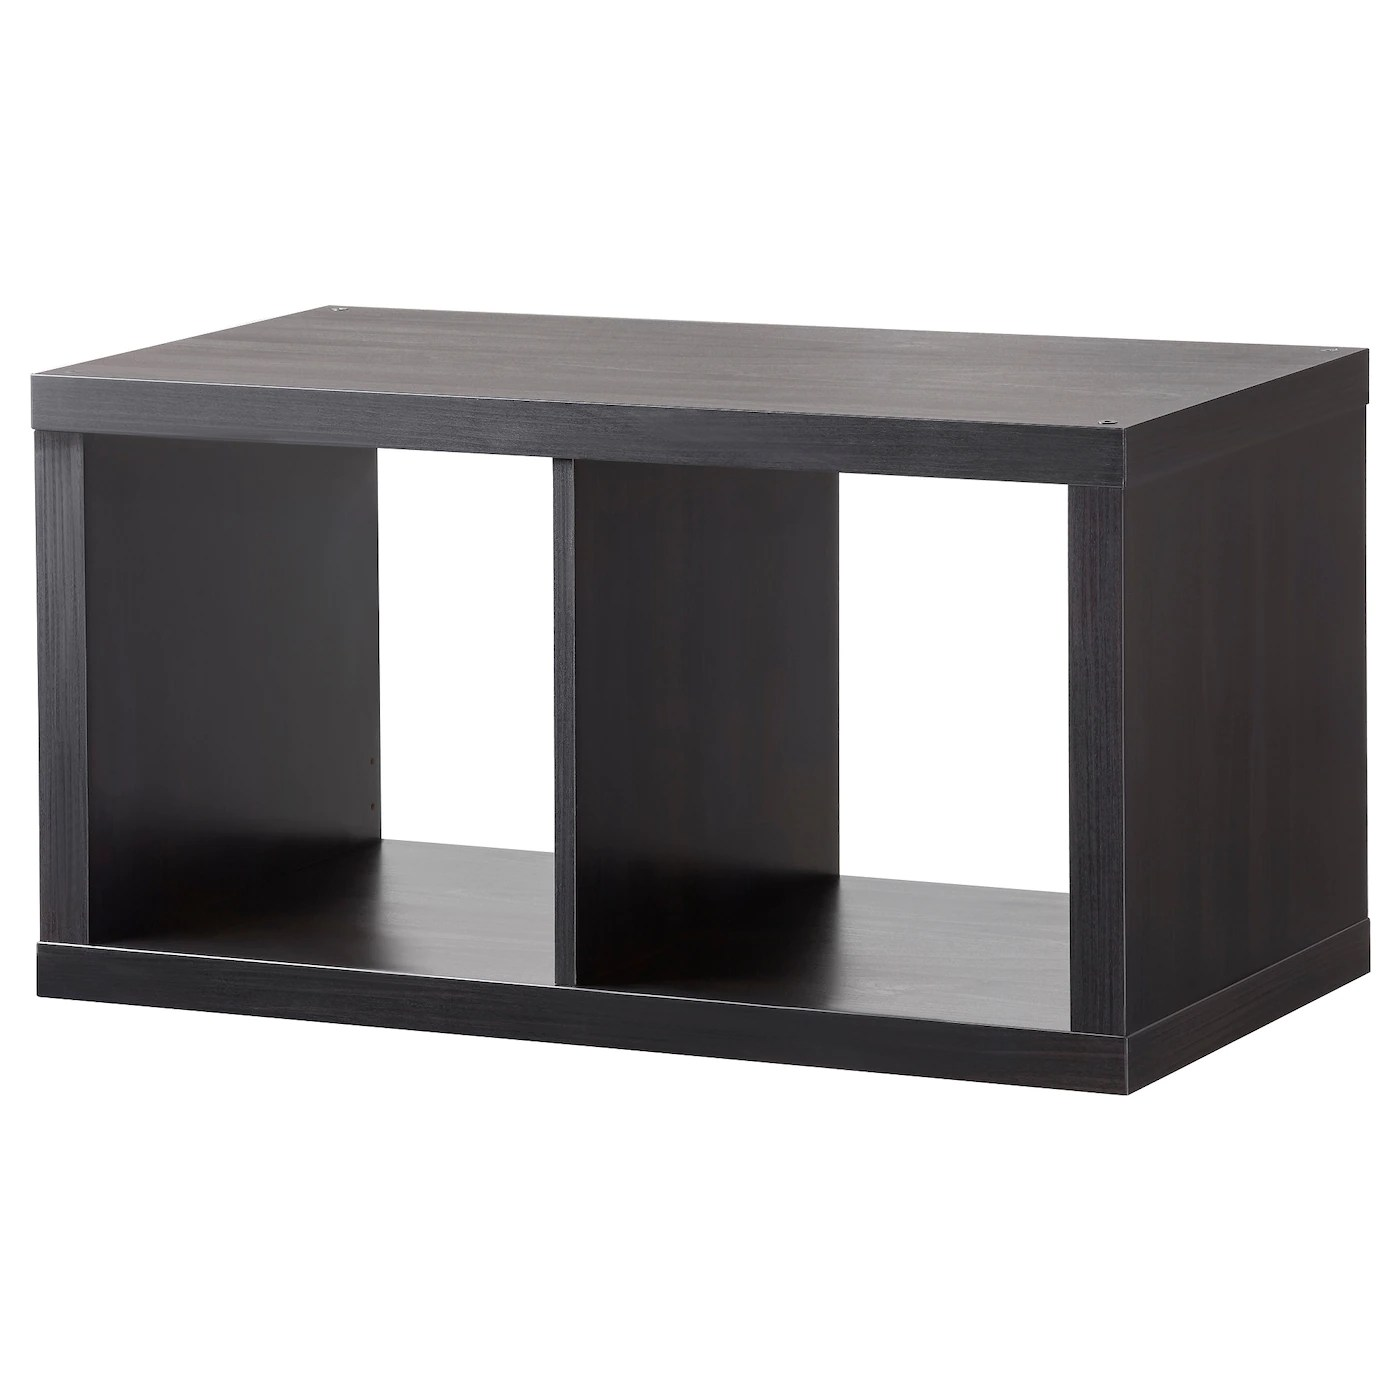 Regalwürfel Nussbaum Kallax Shelving Unit Black Brown 77 X 42 Cm Ikea